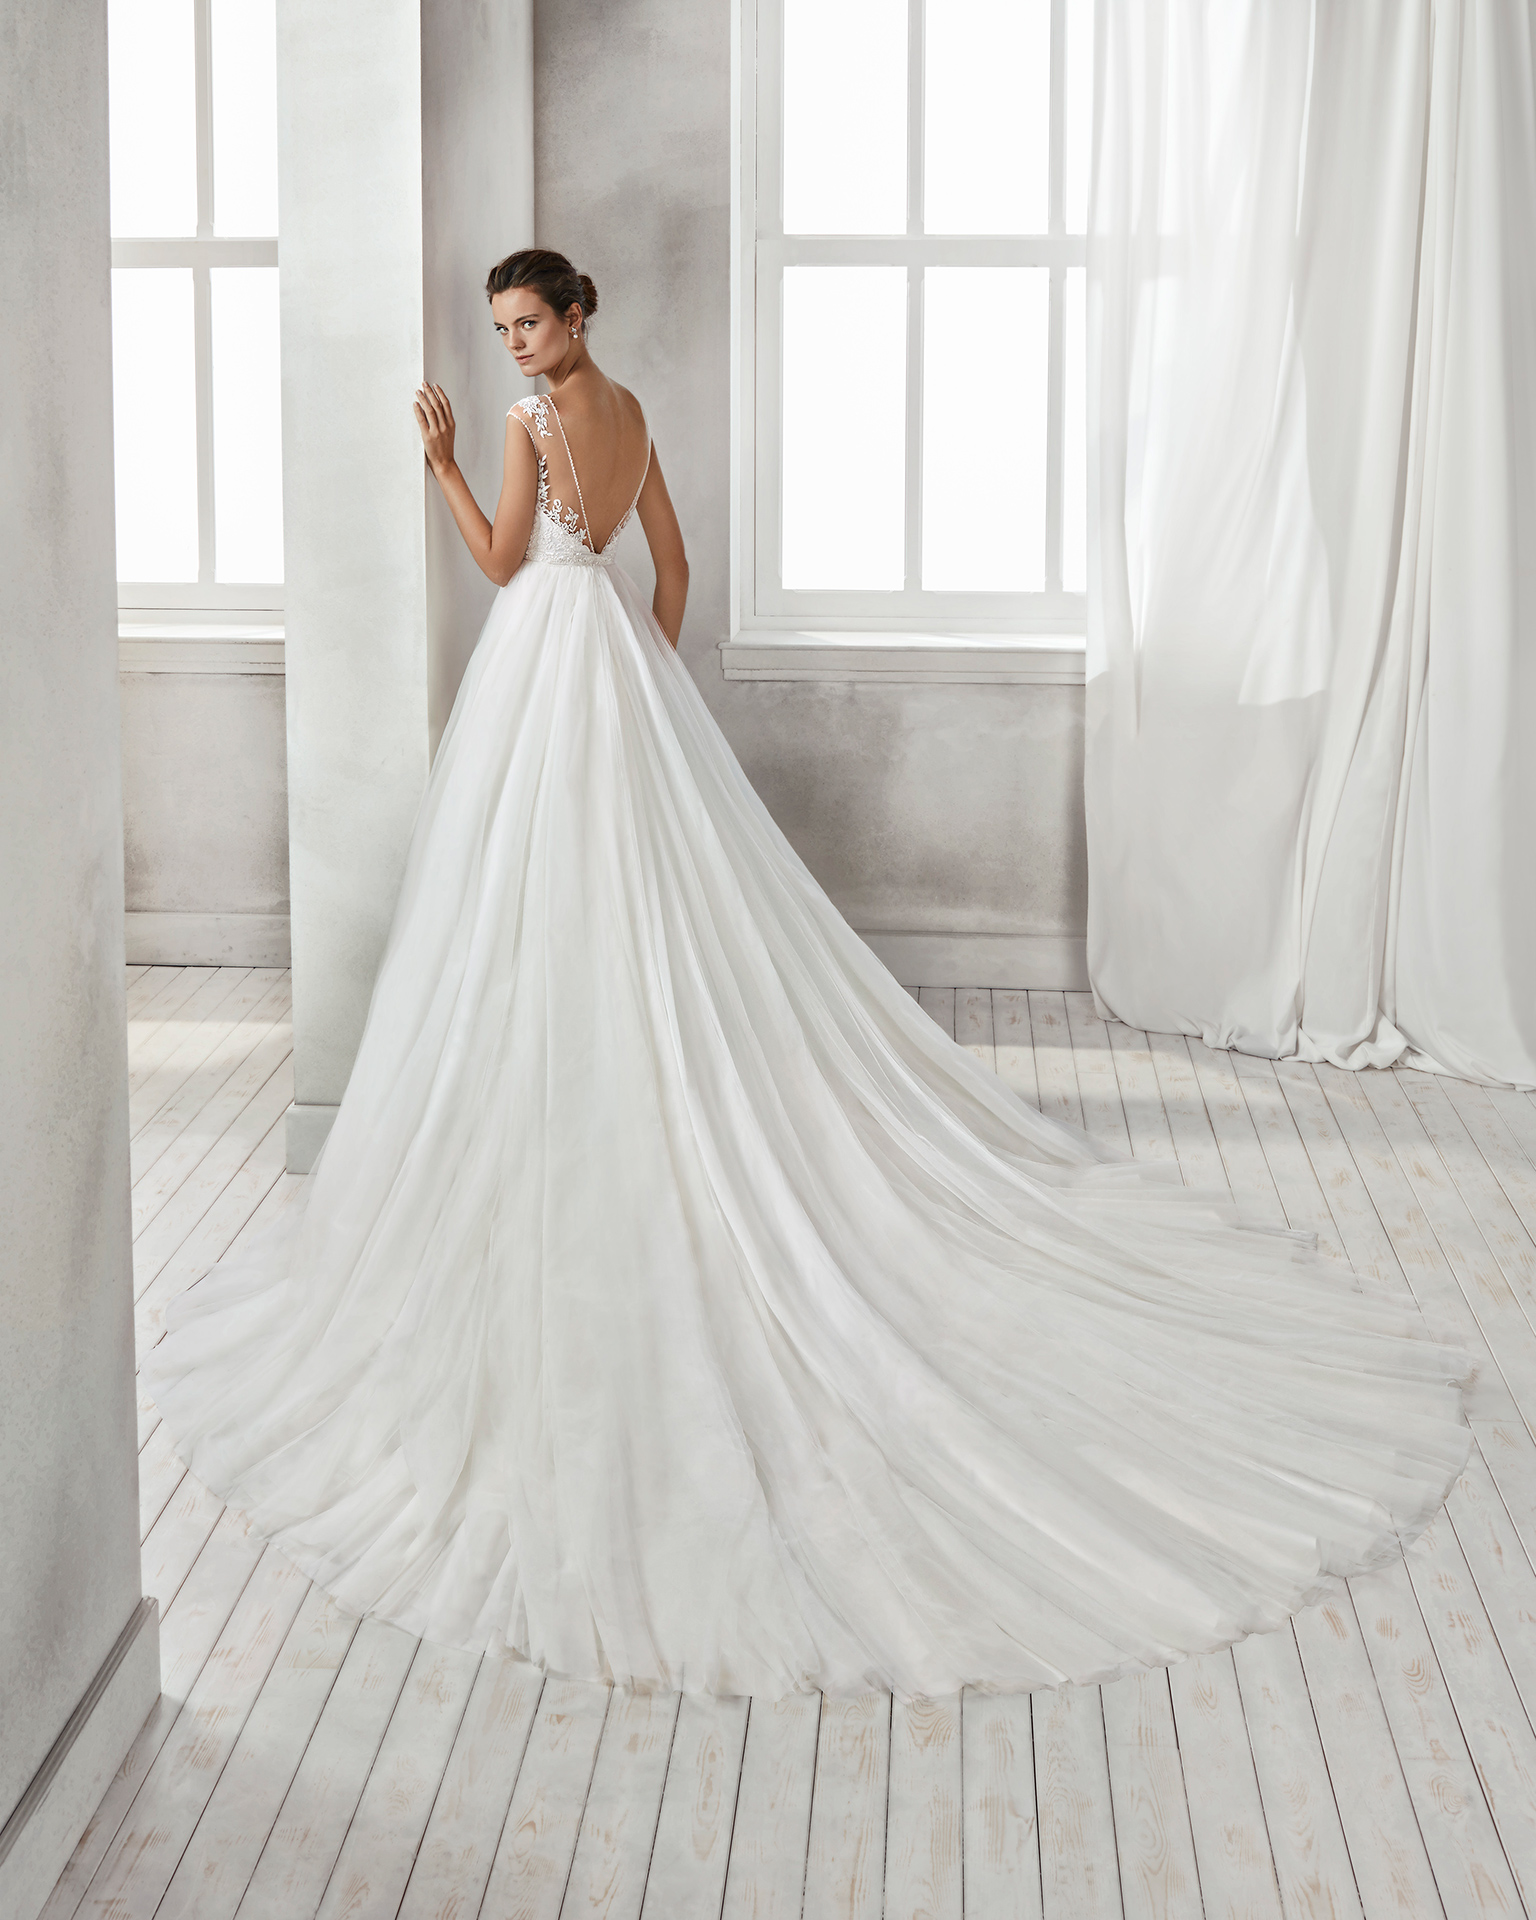 Princess-style beaded lace and tulle wedding dress with sweetheart neckline, low back and full tulle skirt.